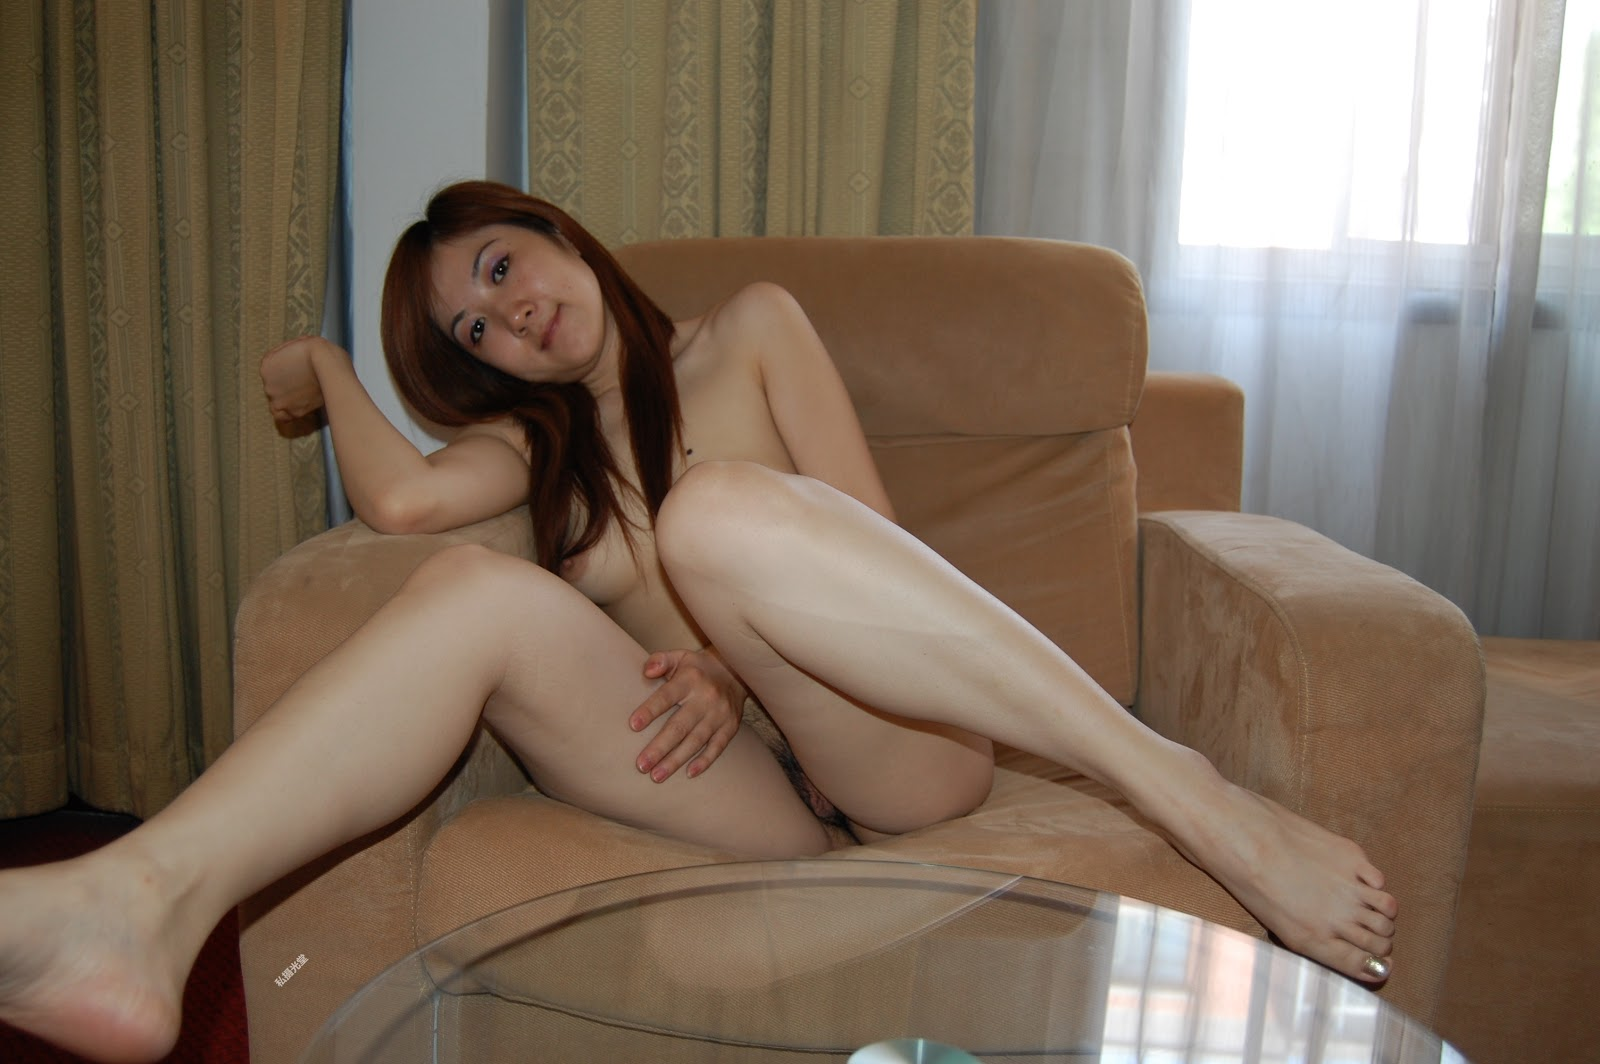 Chinese Nude_Art_Photos_-_269_-_YanRan_Vol_3.rar Chinese_Nude_Art_Photos_-_269_-_YanRan_Vol_3.rar.DSC_0486